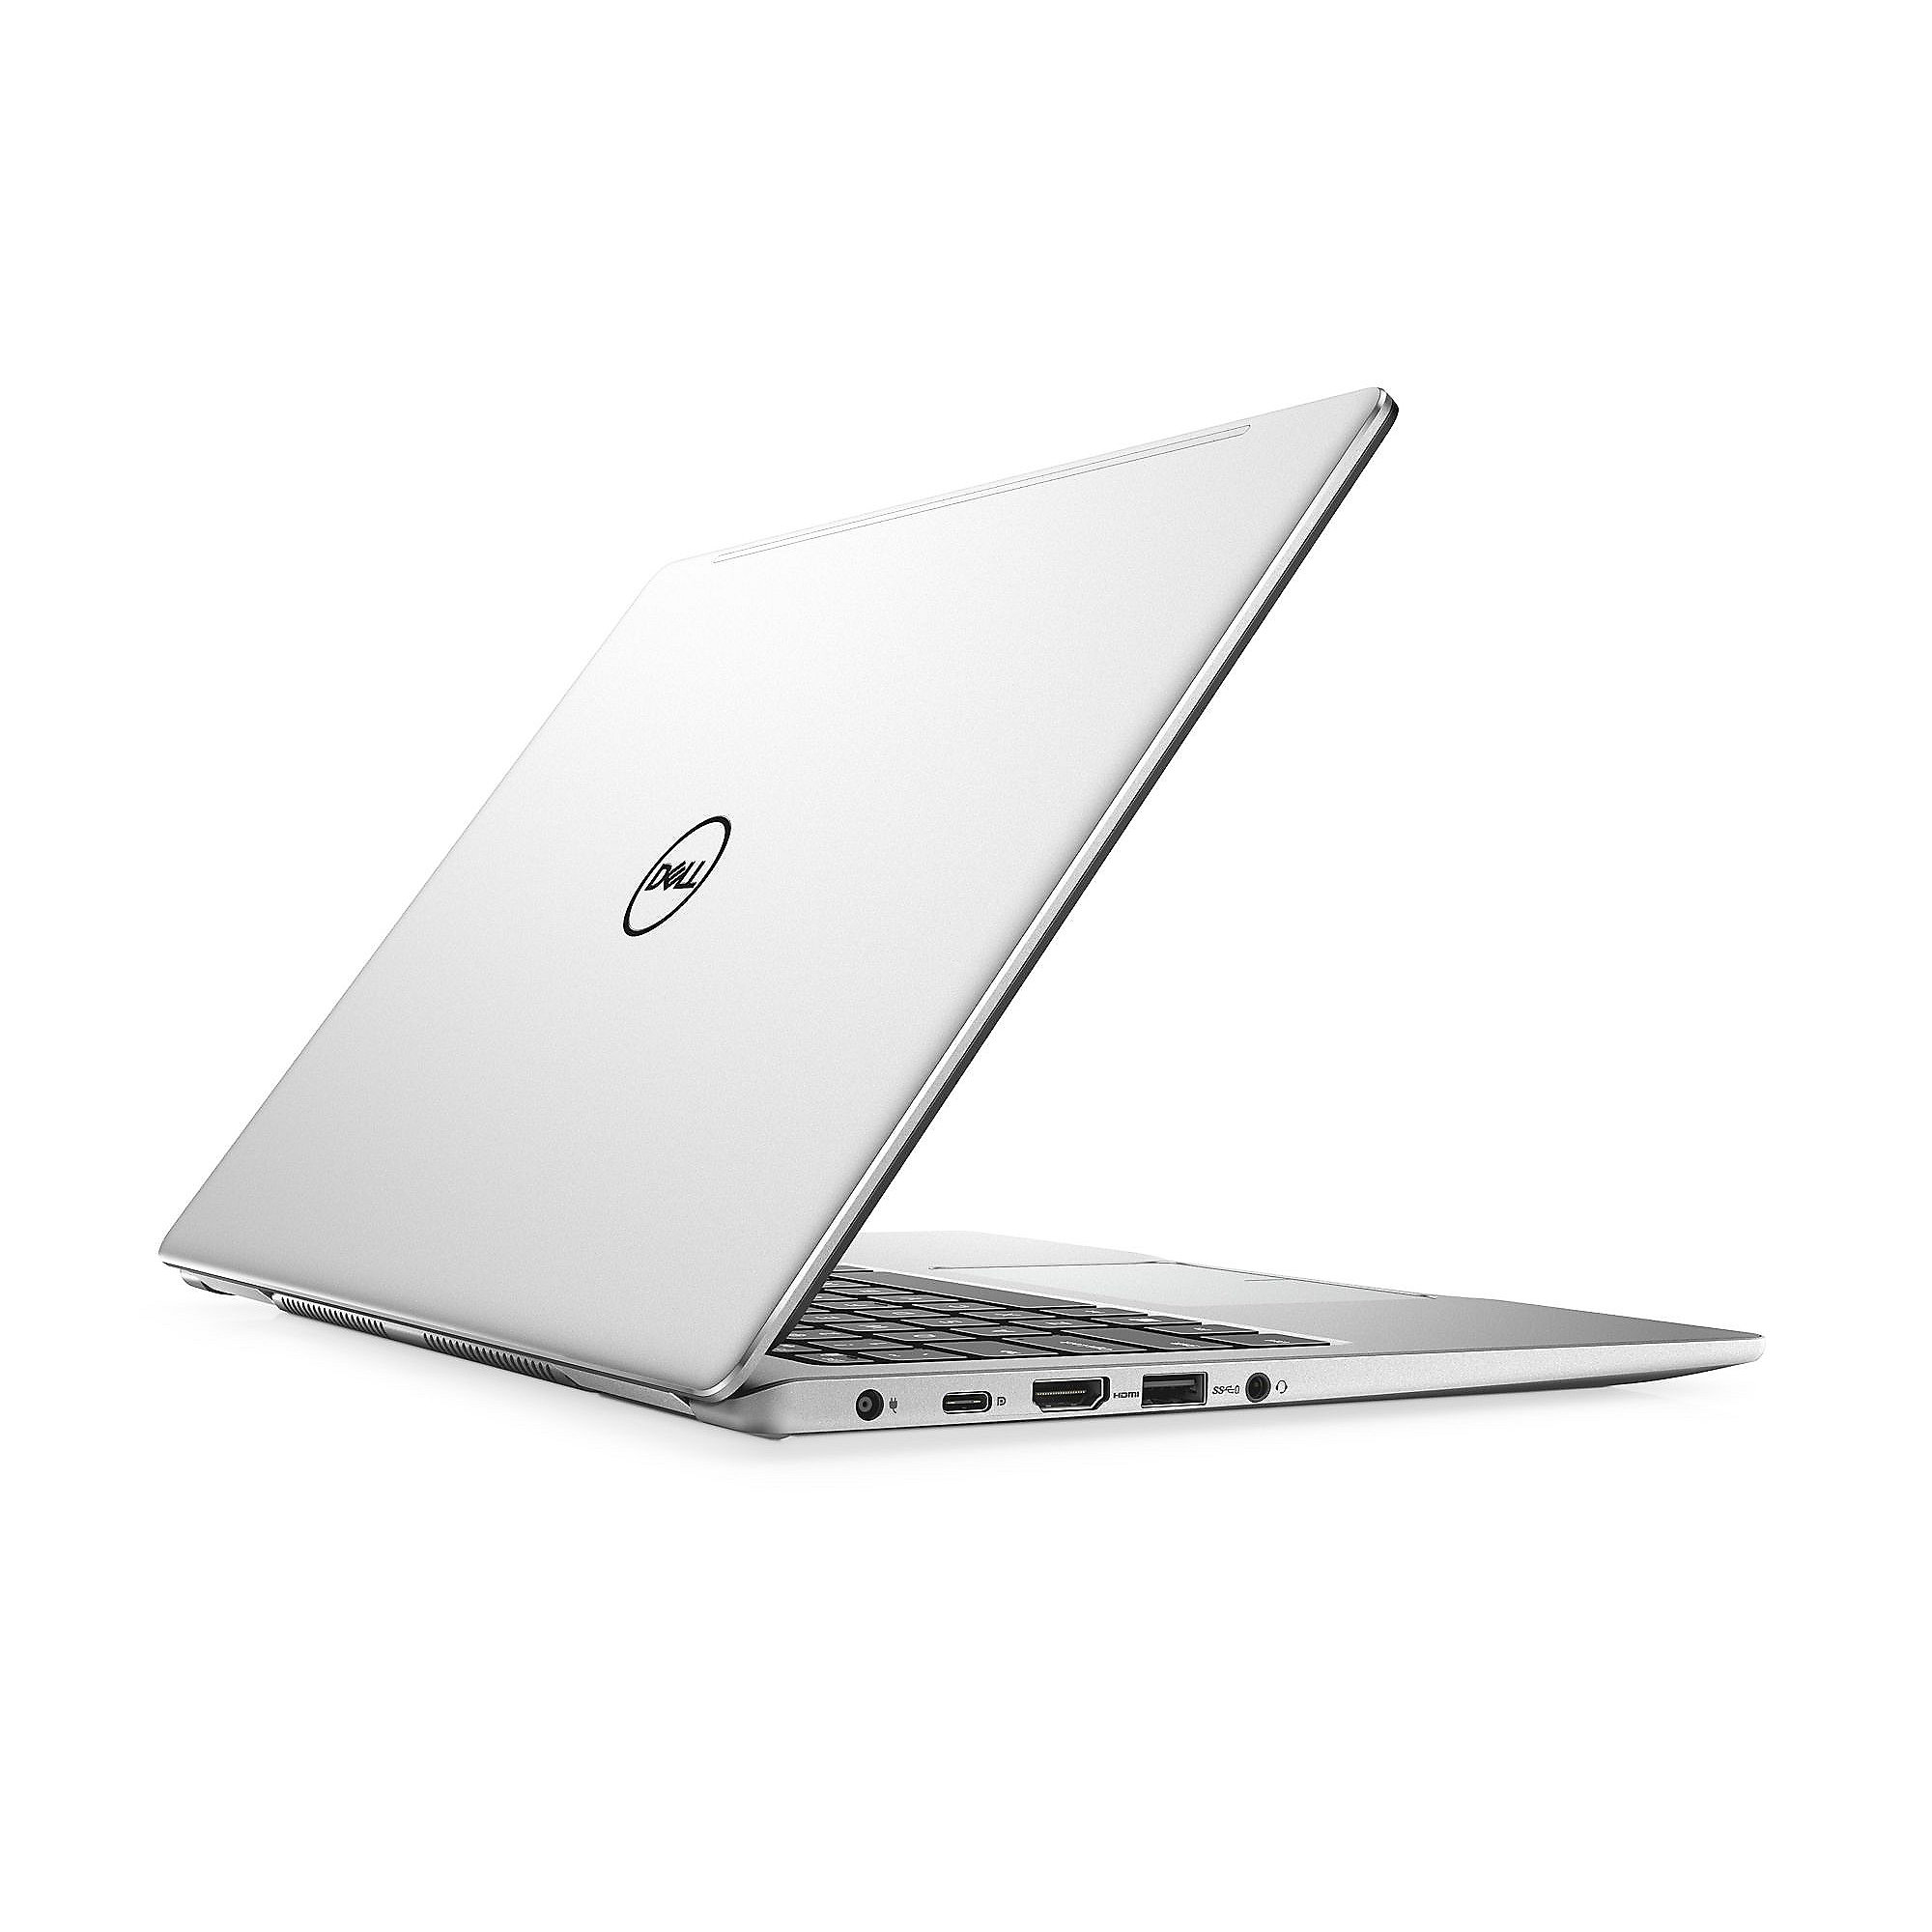 "DELL Inspiron 13 7370 i5-8250U 8GB/256GB SSD 13"" FHD Intel HD 620 Touch W10"